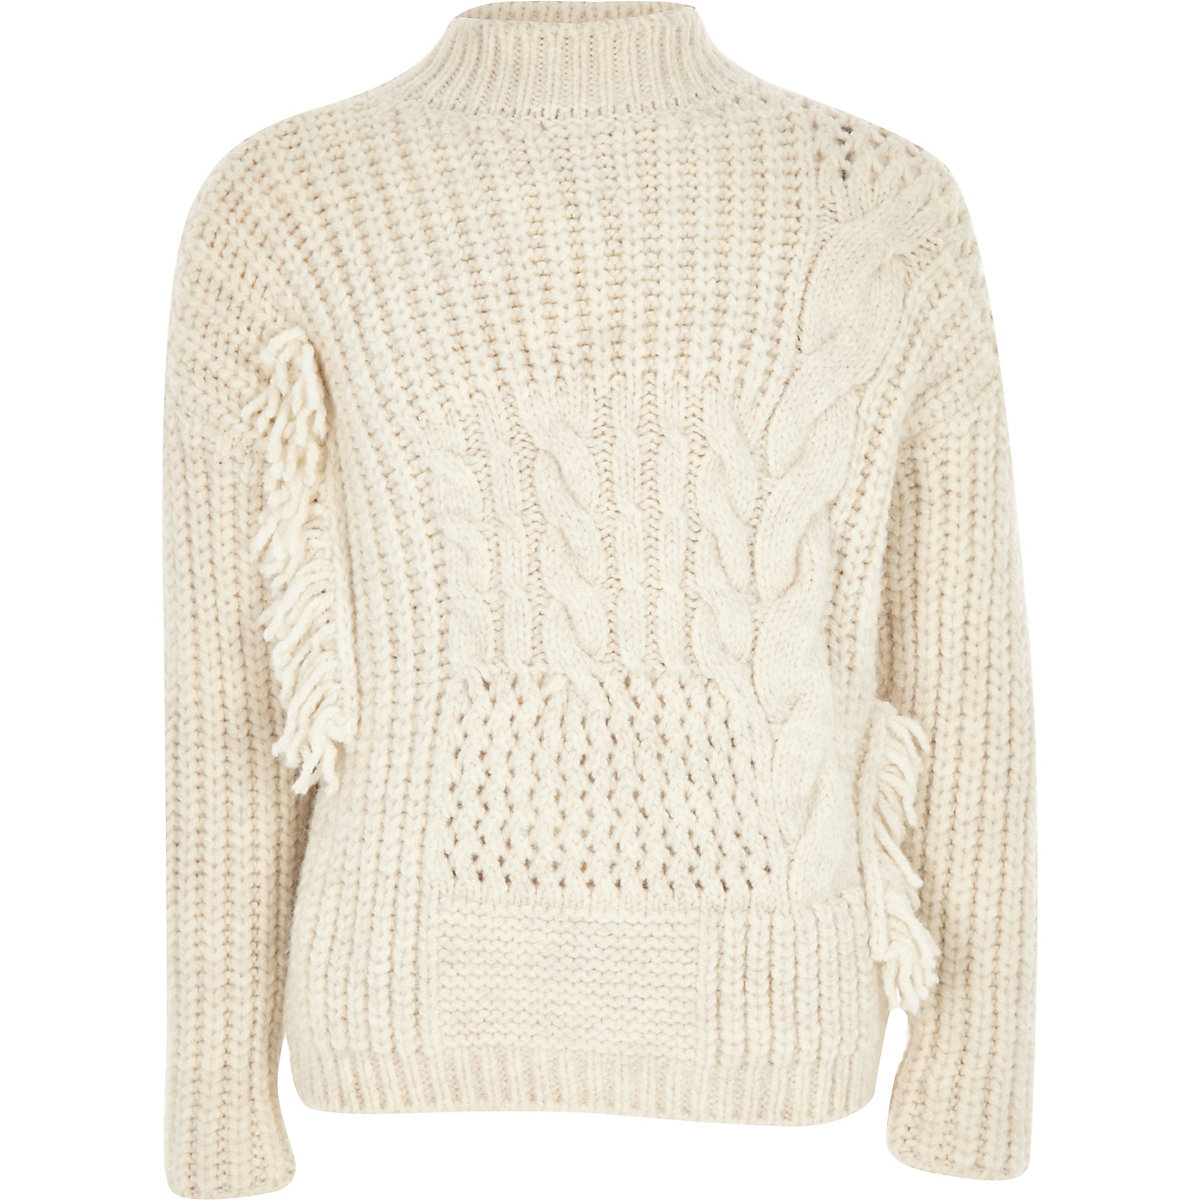 Girls cream cable knit high neck jumper